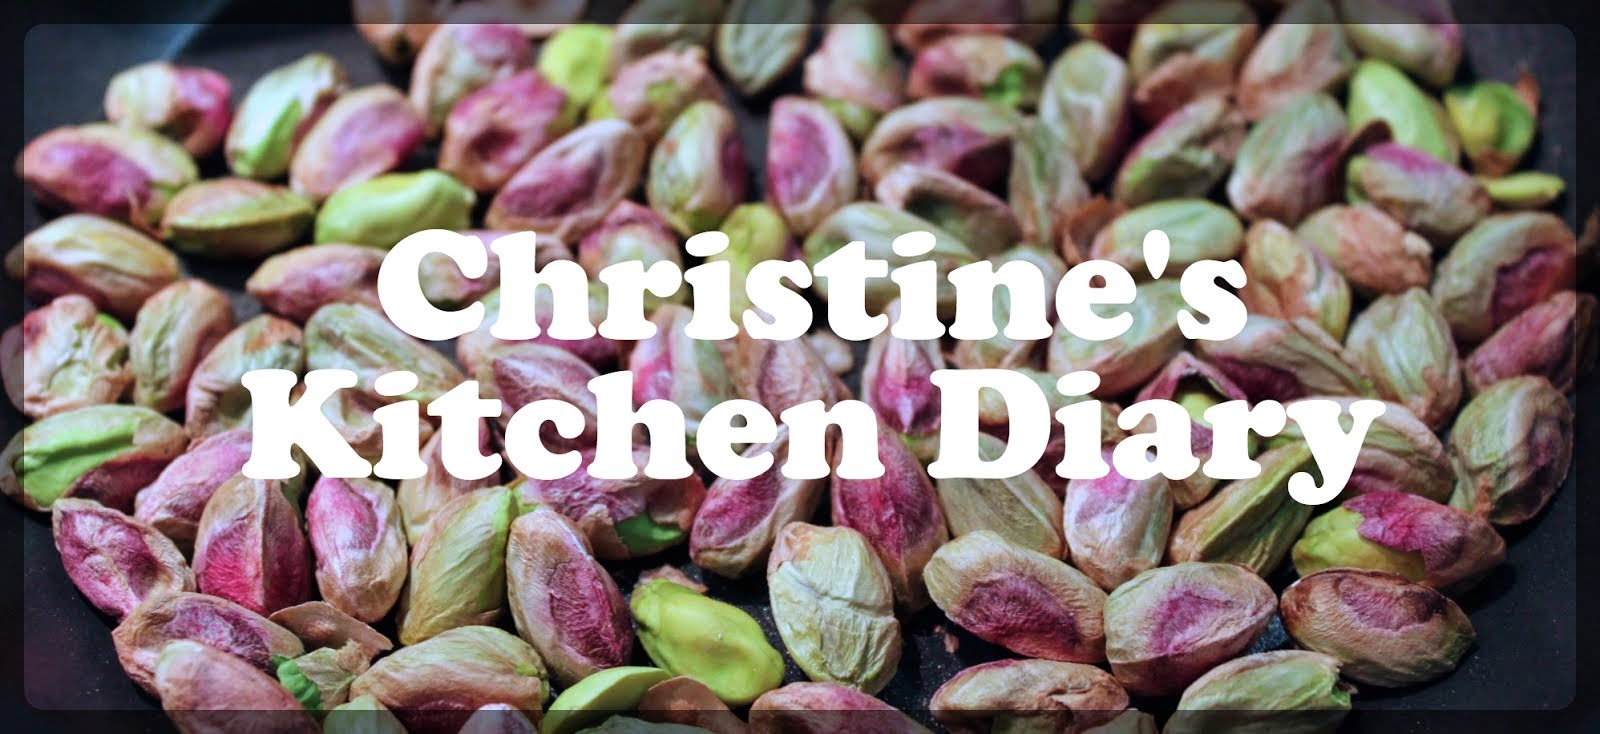 Christine's Kitchen Diary